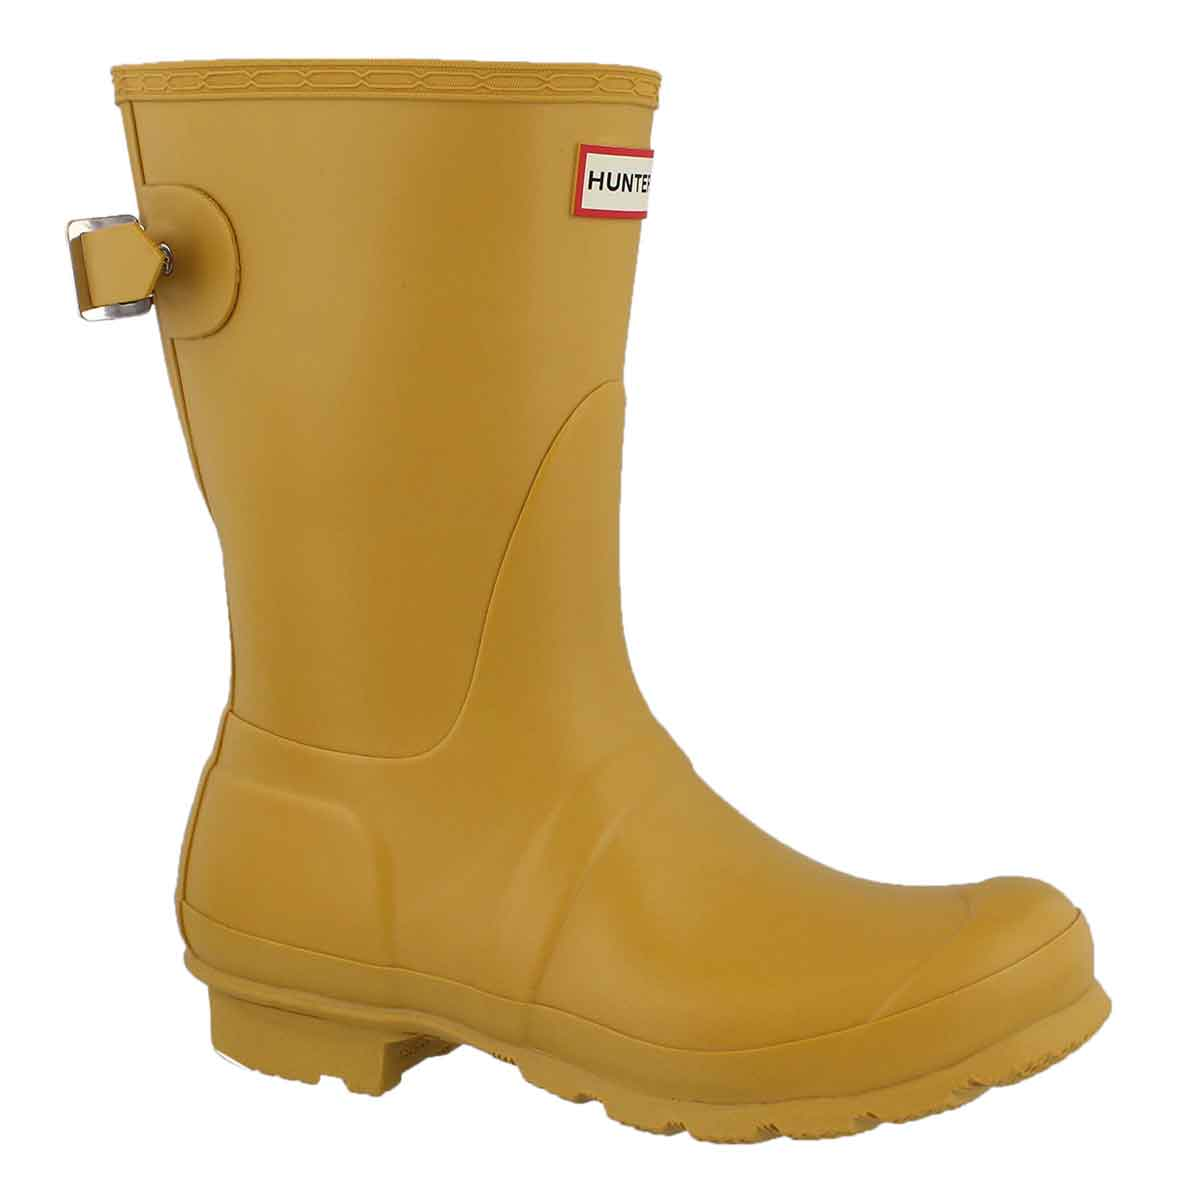 Women's ORIGINAL BACK ADJ SHORT yellow rain boots